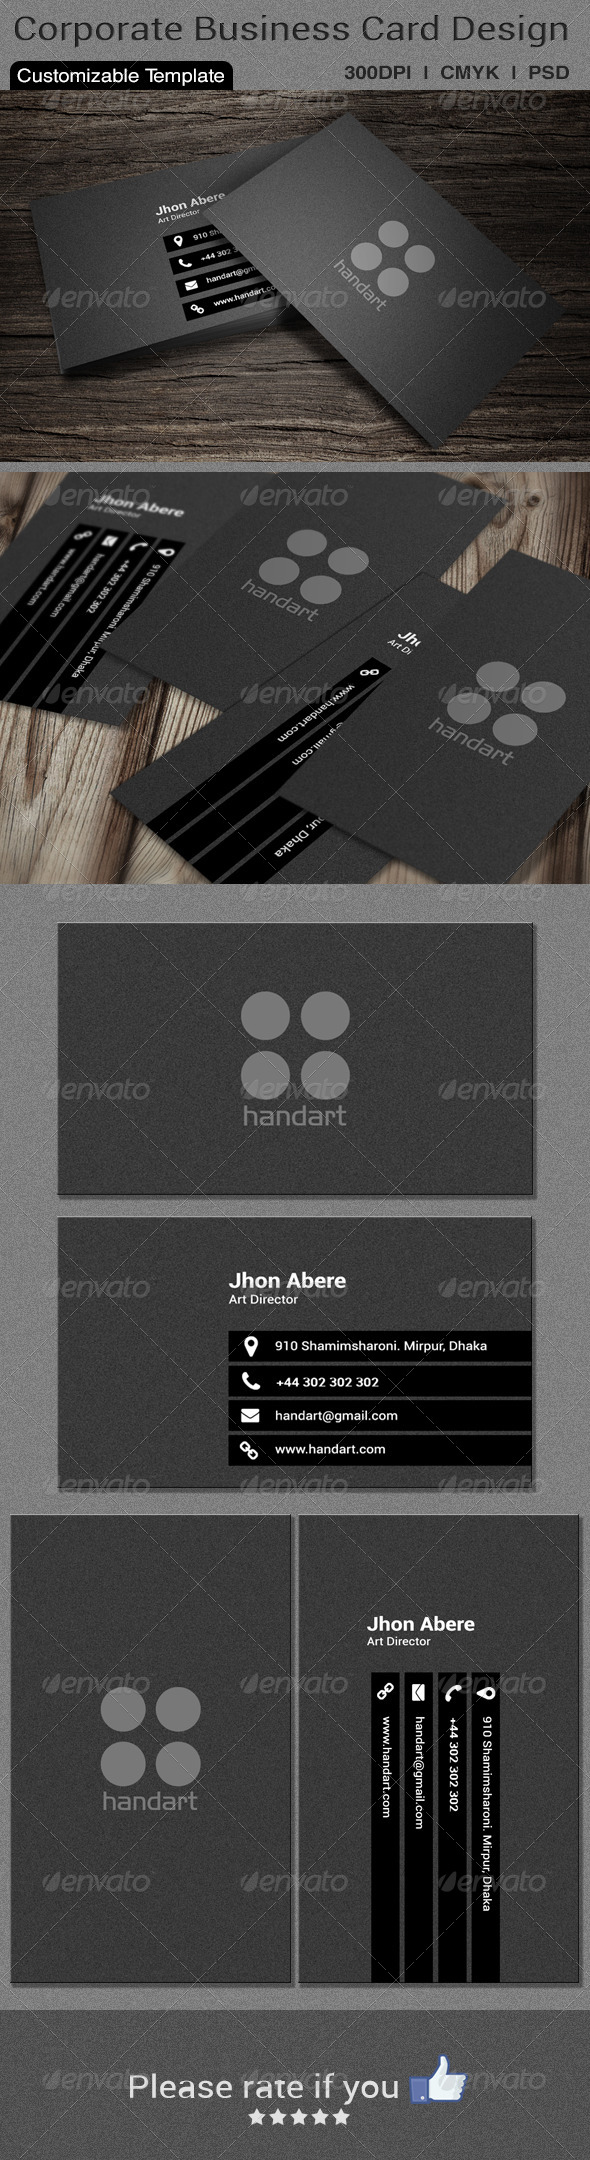 GraphicRiver Corporate Business Card Design 6080508